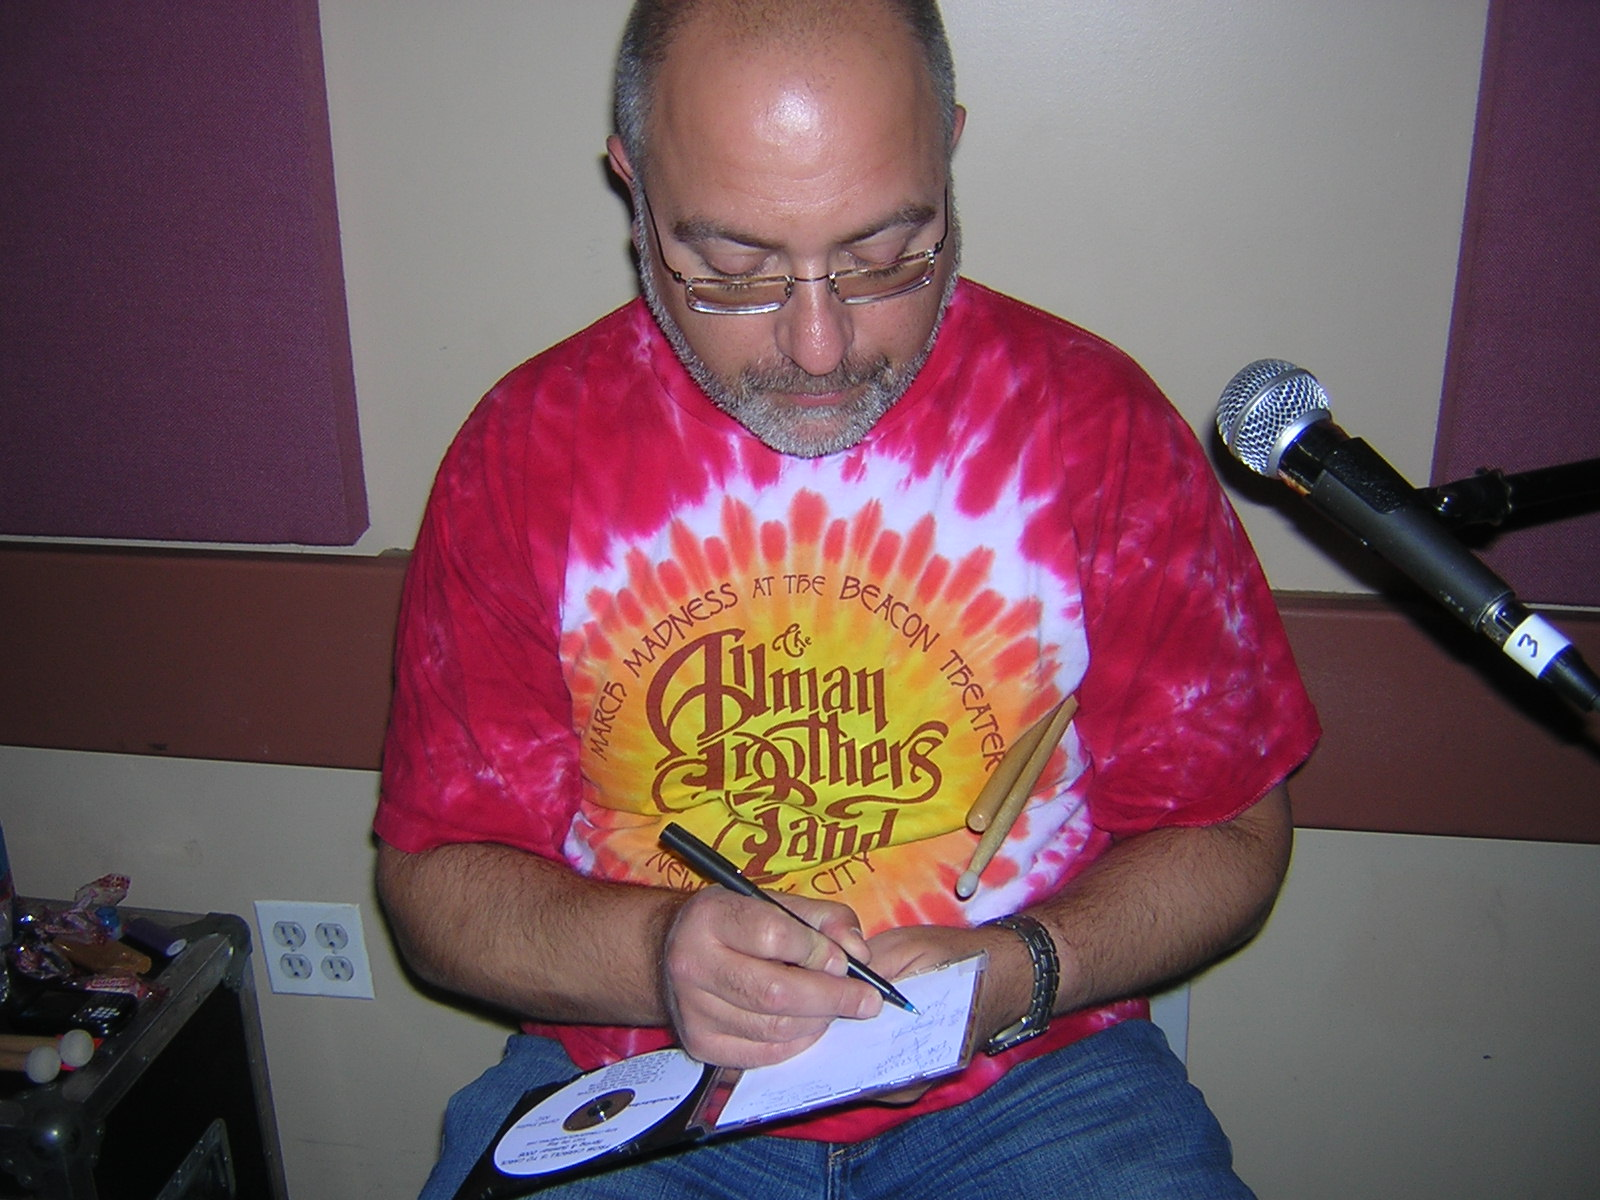 Scott signing the CD